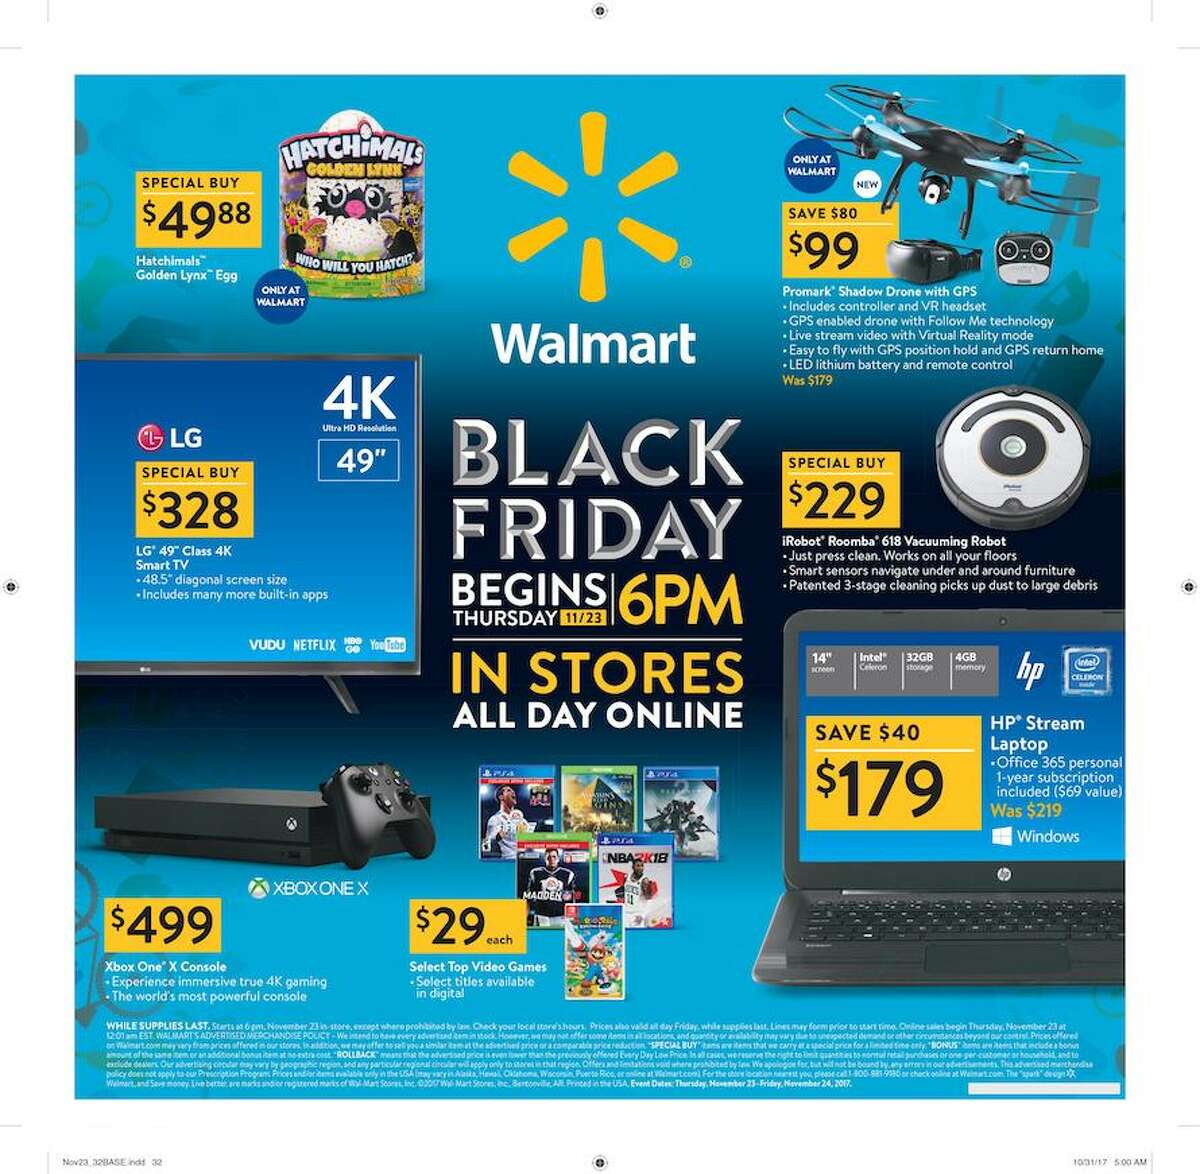 Walmart In-store hours: Thursday, Nov. 23 at 6 p.m.Online hours: Nov. 23 at 12:01 a.m. all deals are on Walmart.com. More details here.See their Black Friday ad circular here.